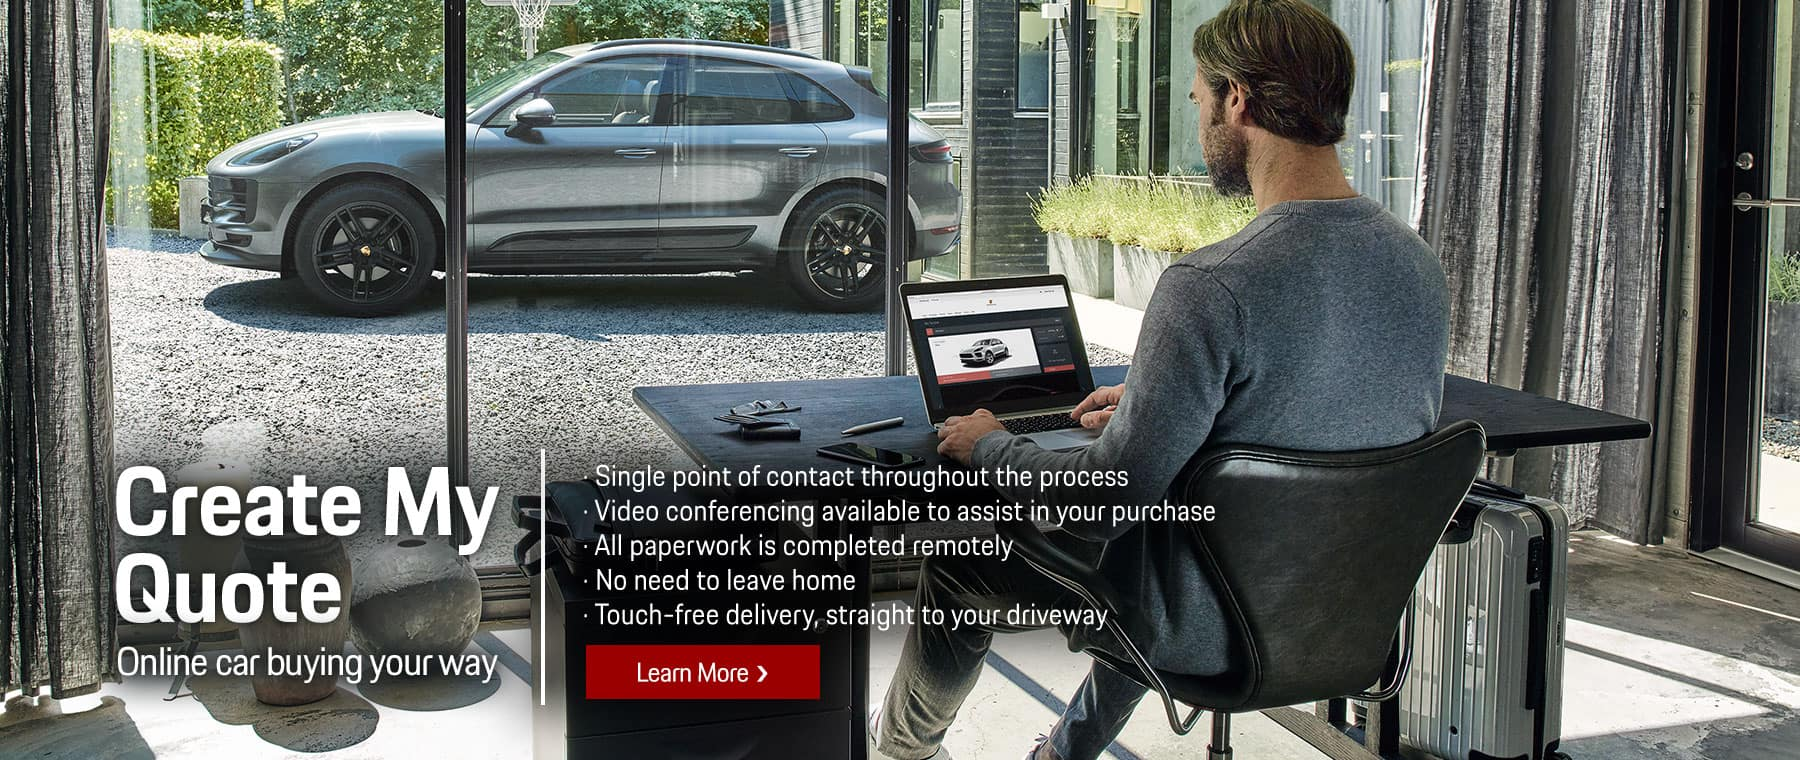 Online Car Buying Your Way at Porsche Livermore, CA